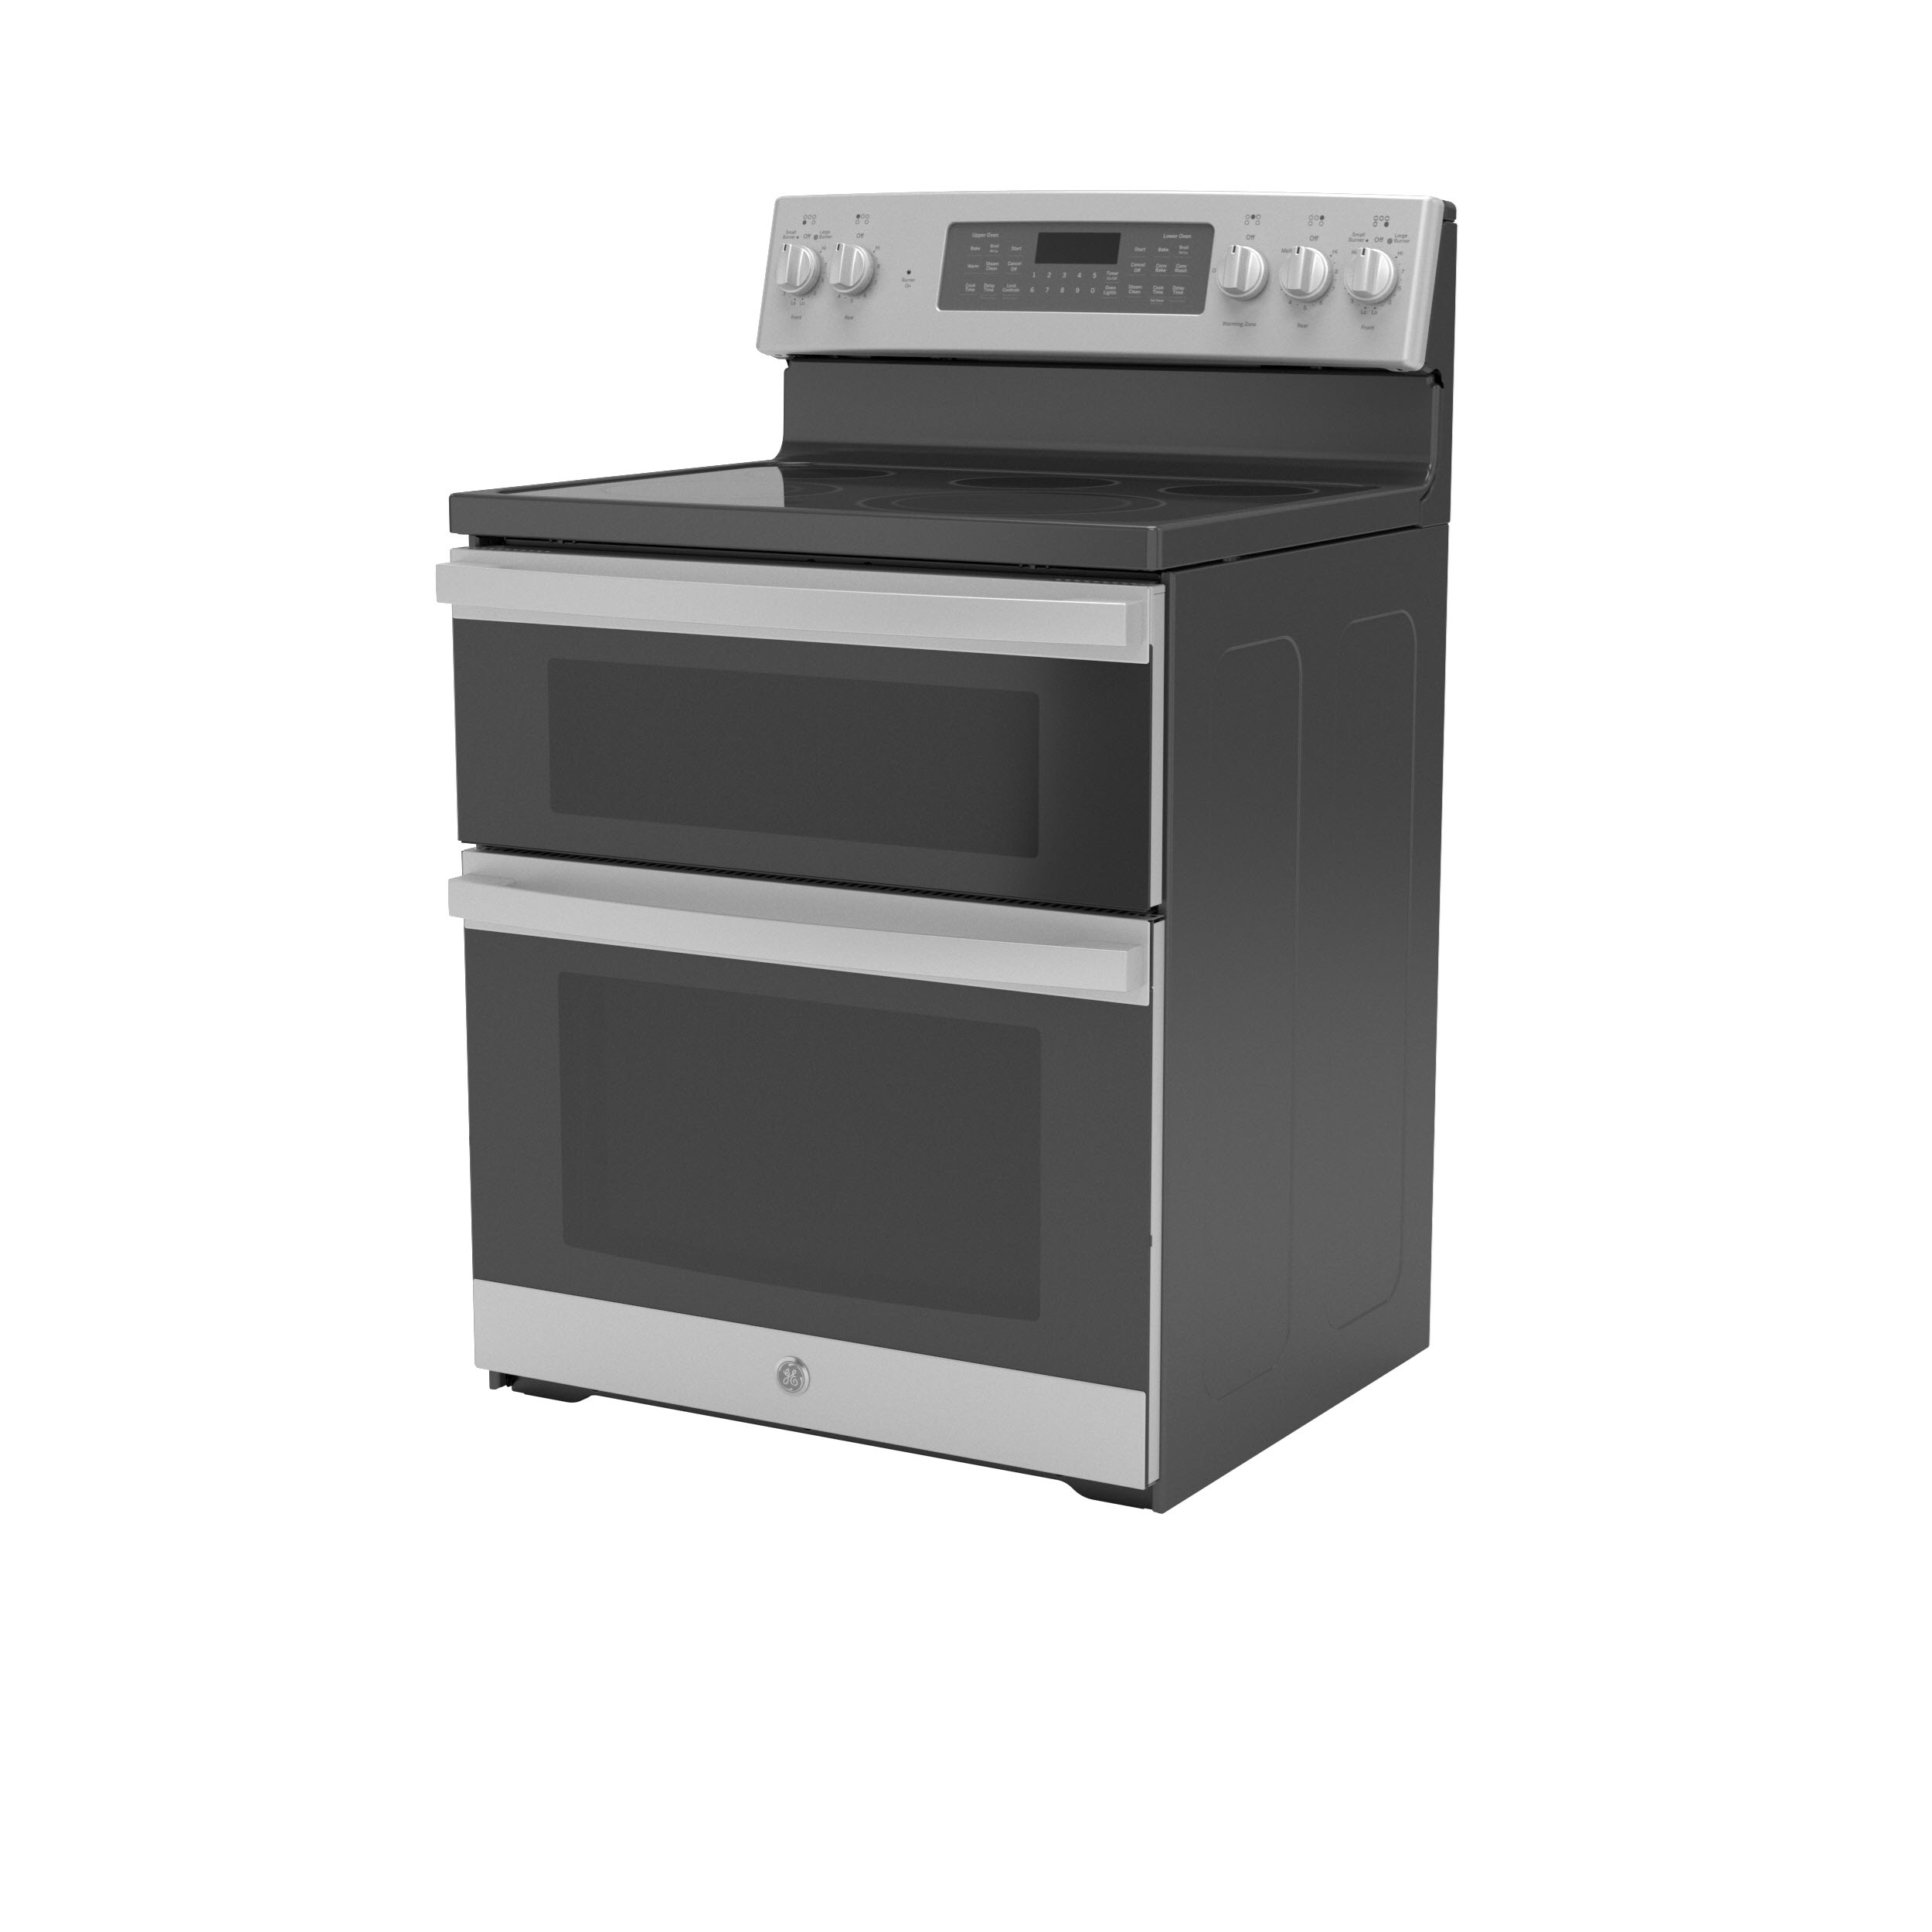 "Model: JBS86SPSS | GE GE® 30"" Free-Standing Electric Double Oven Convection Range"